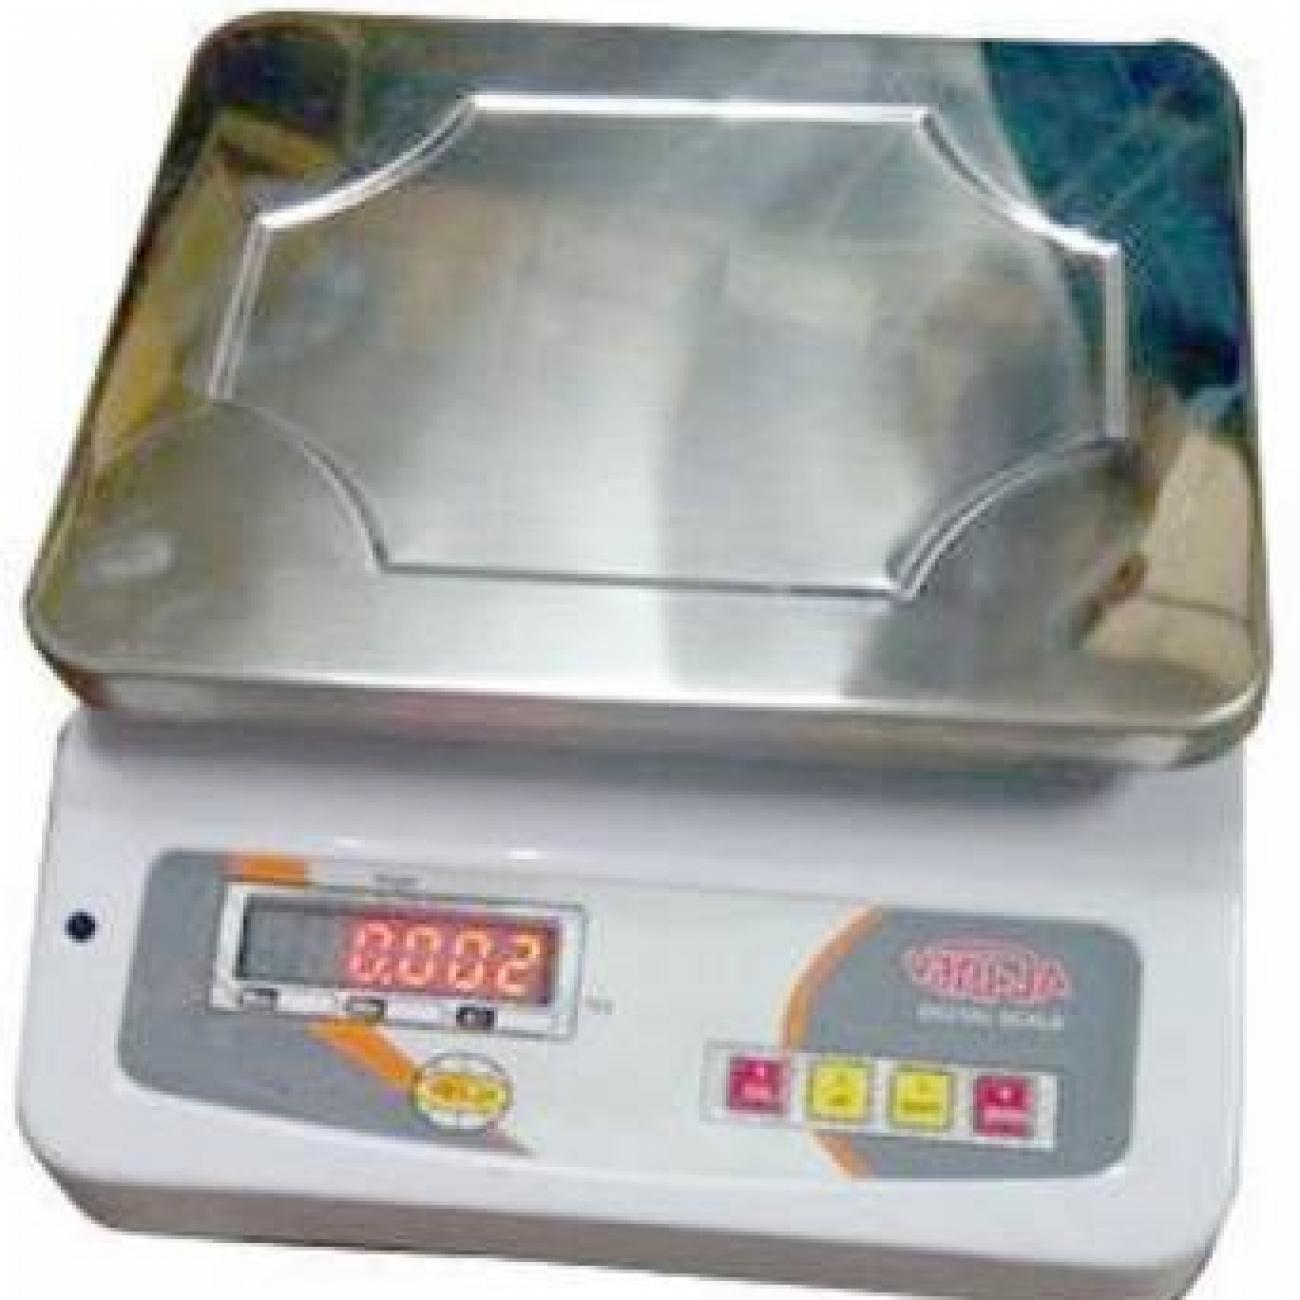 Commercial Electronic Weighin